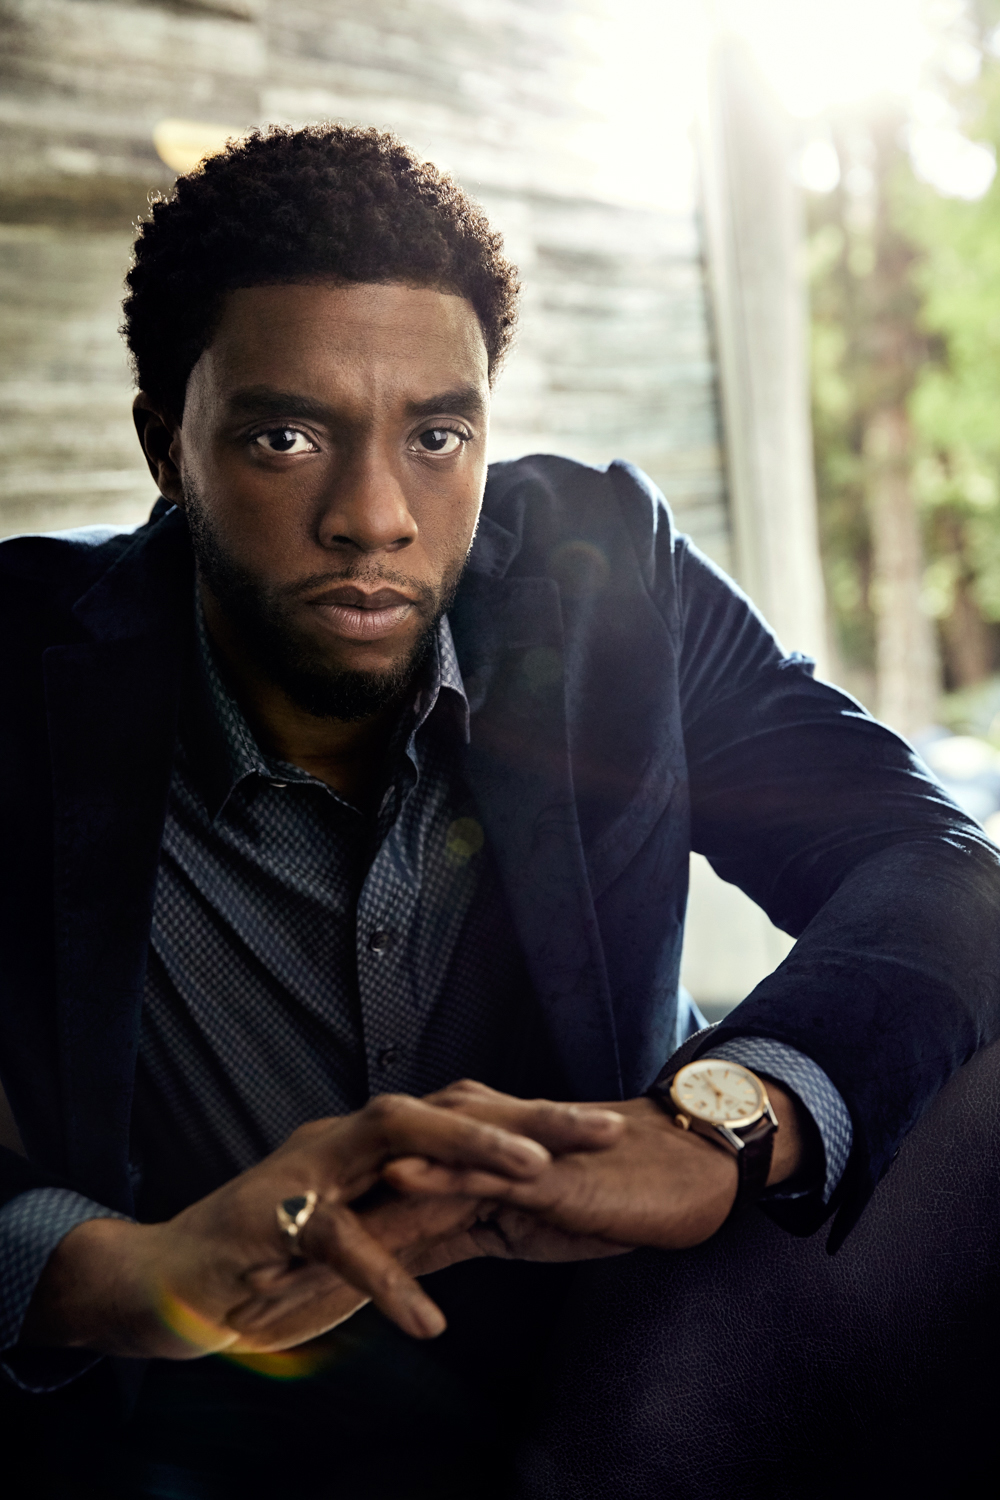 Art Streiber Photographs Black Panther Star Chadwick Boseman For The November Issue Of Vanity Fair Stockland Martel Blog